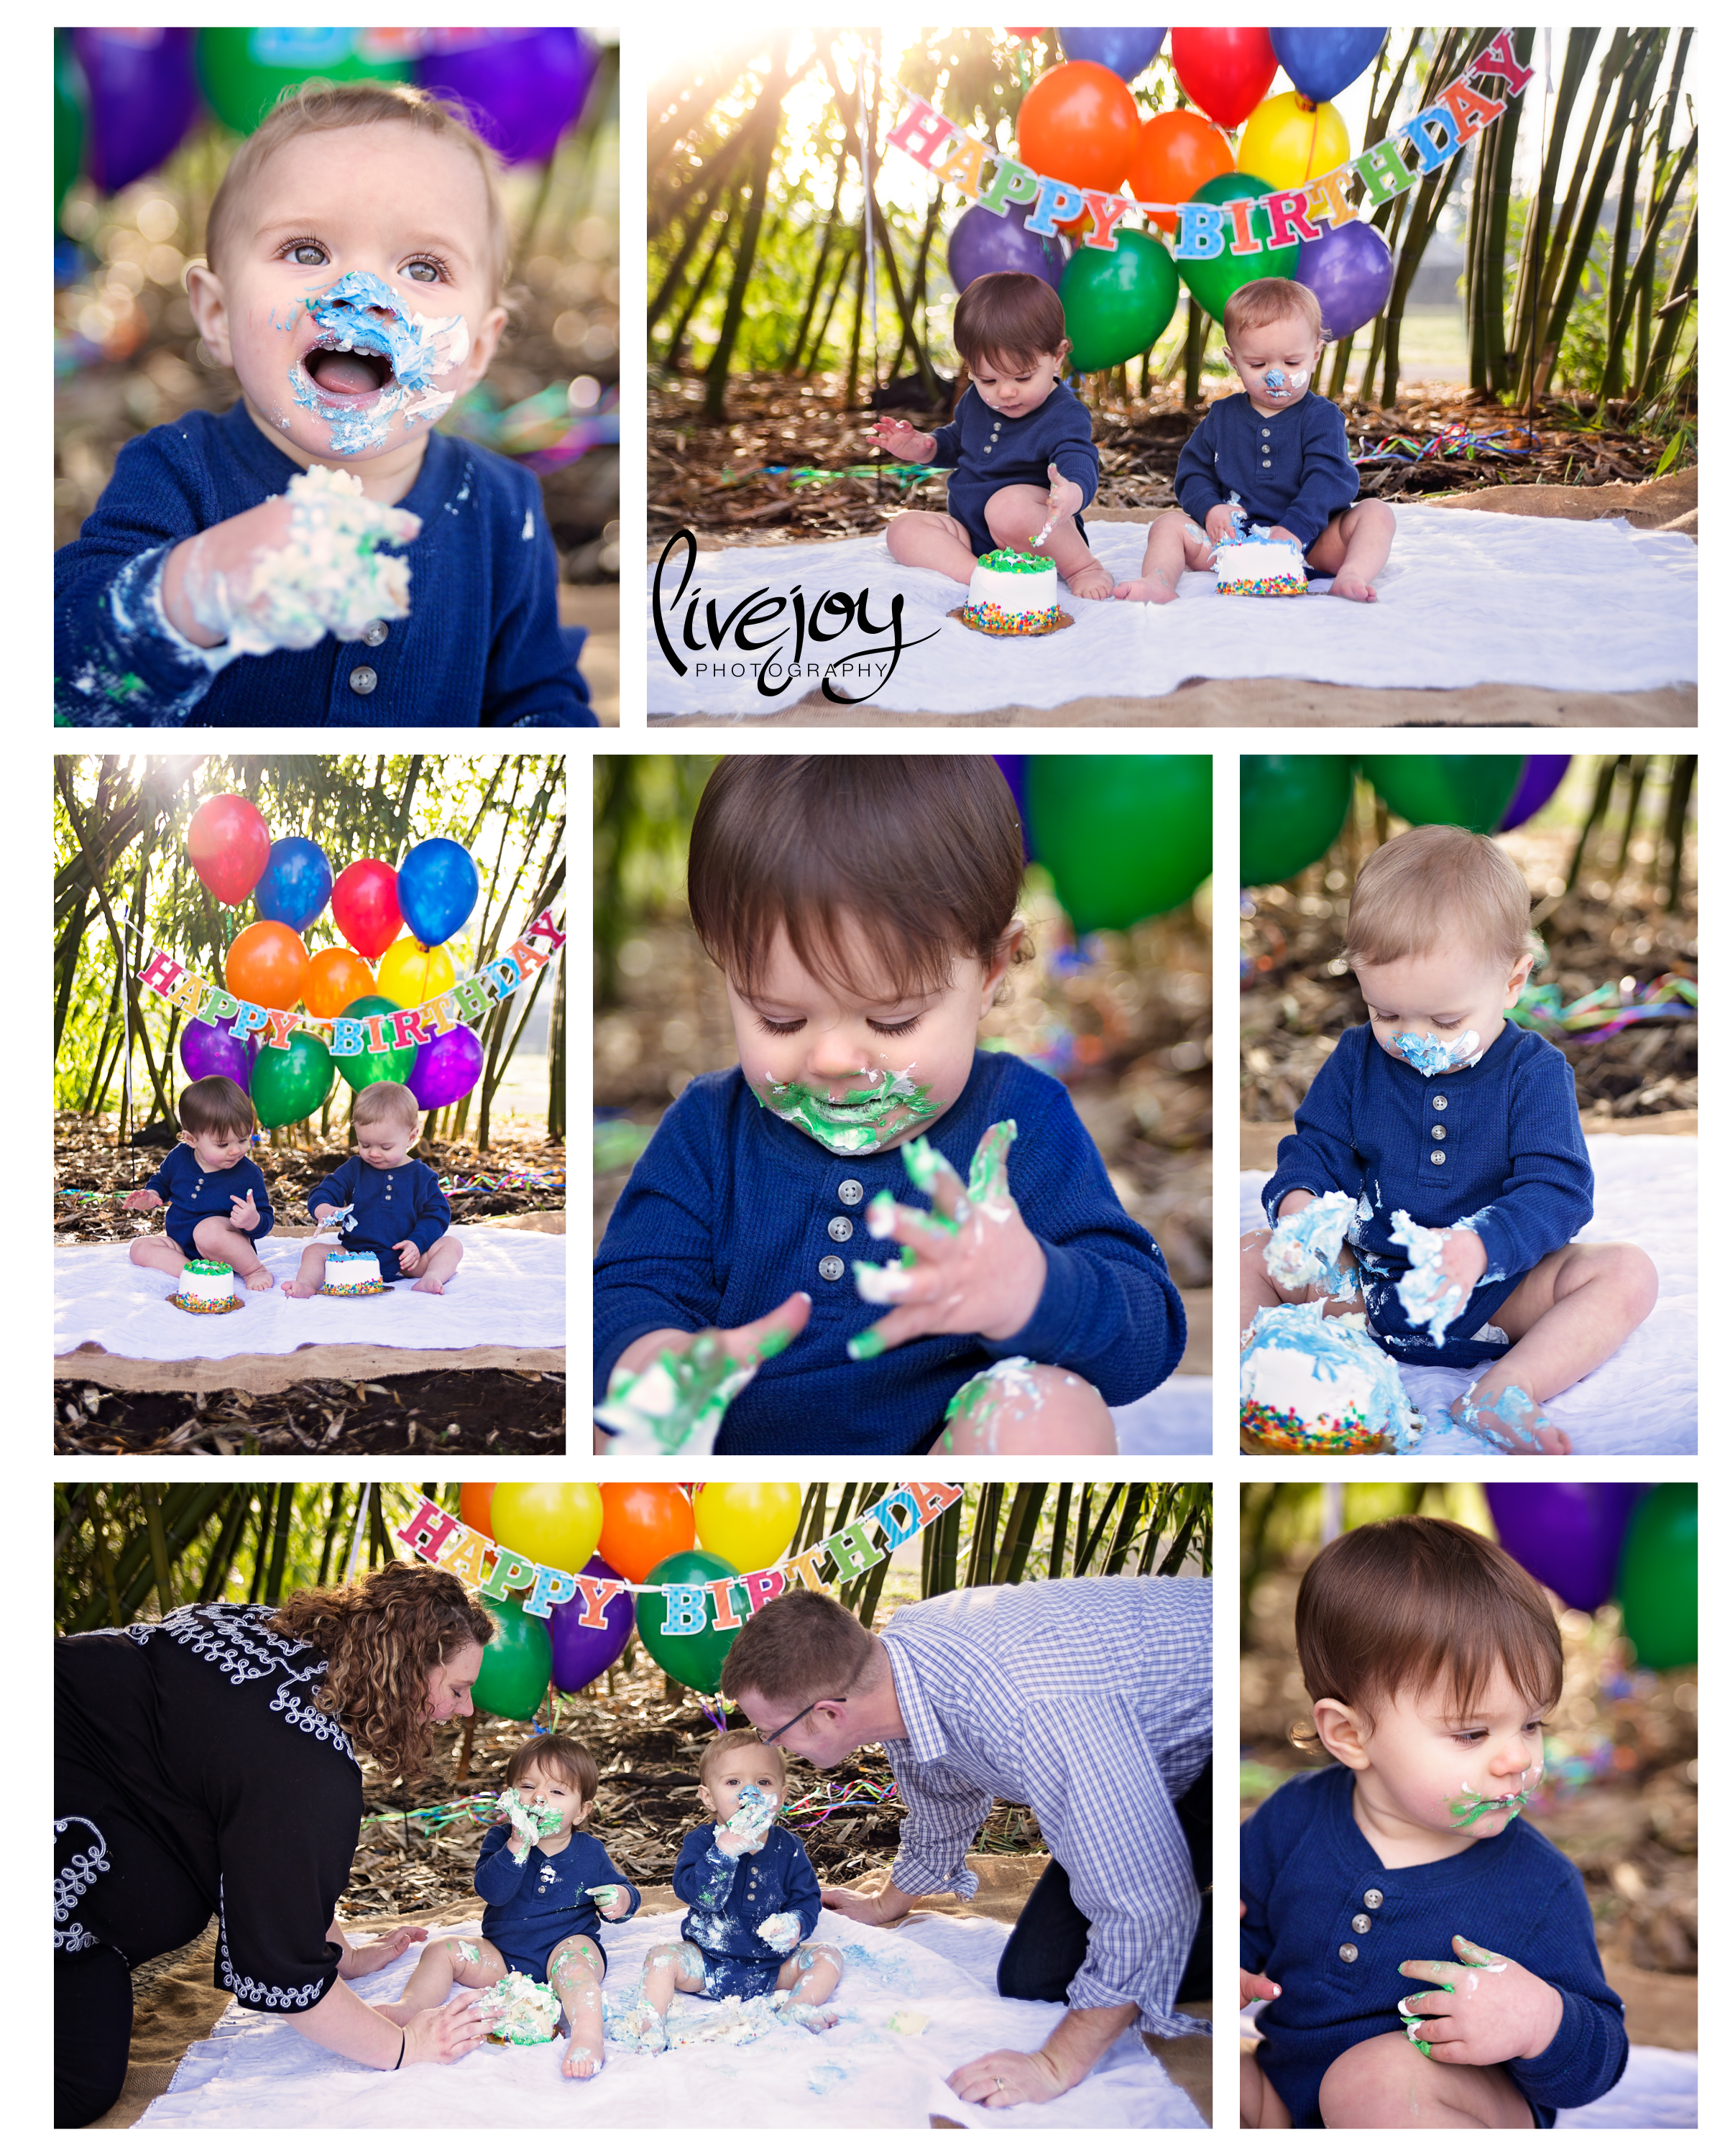 Twin Boys 1 Year Cake Smash Session | LiveJoy Photography